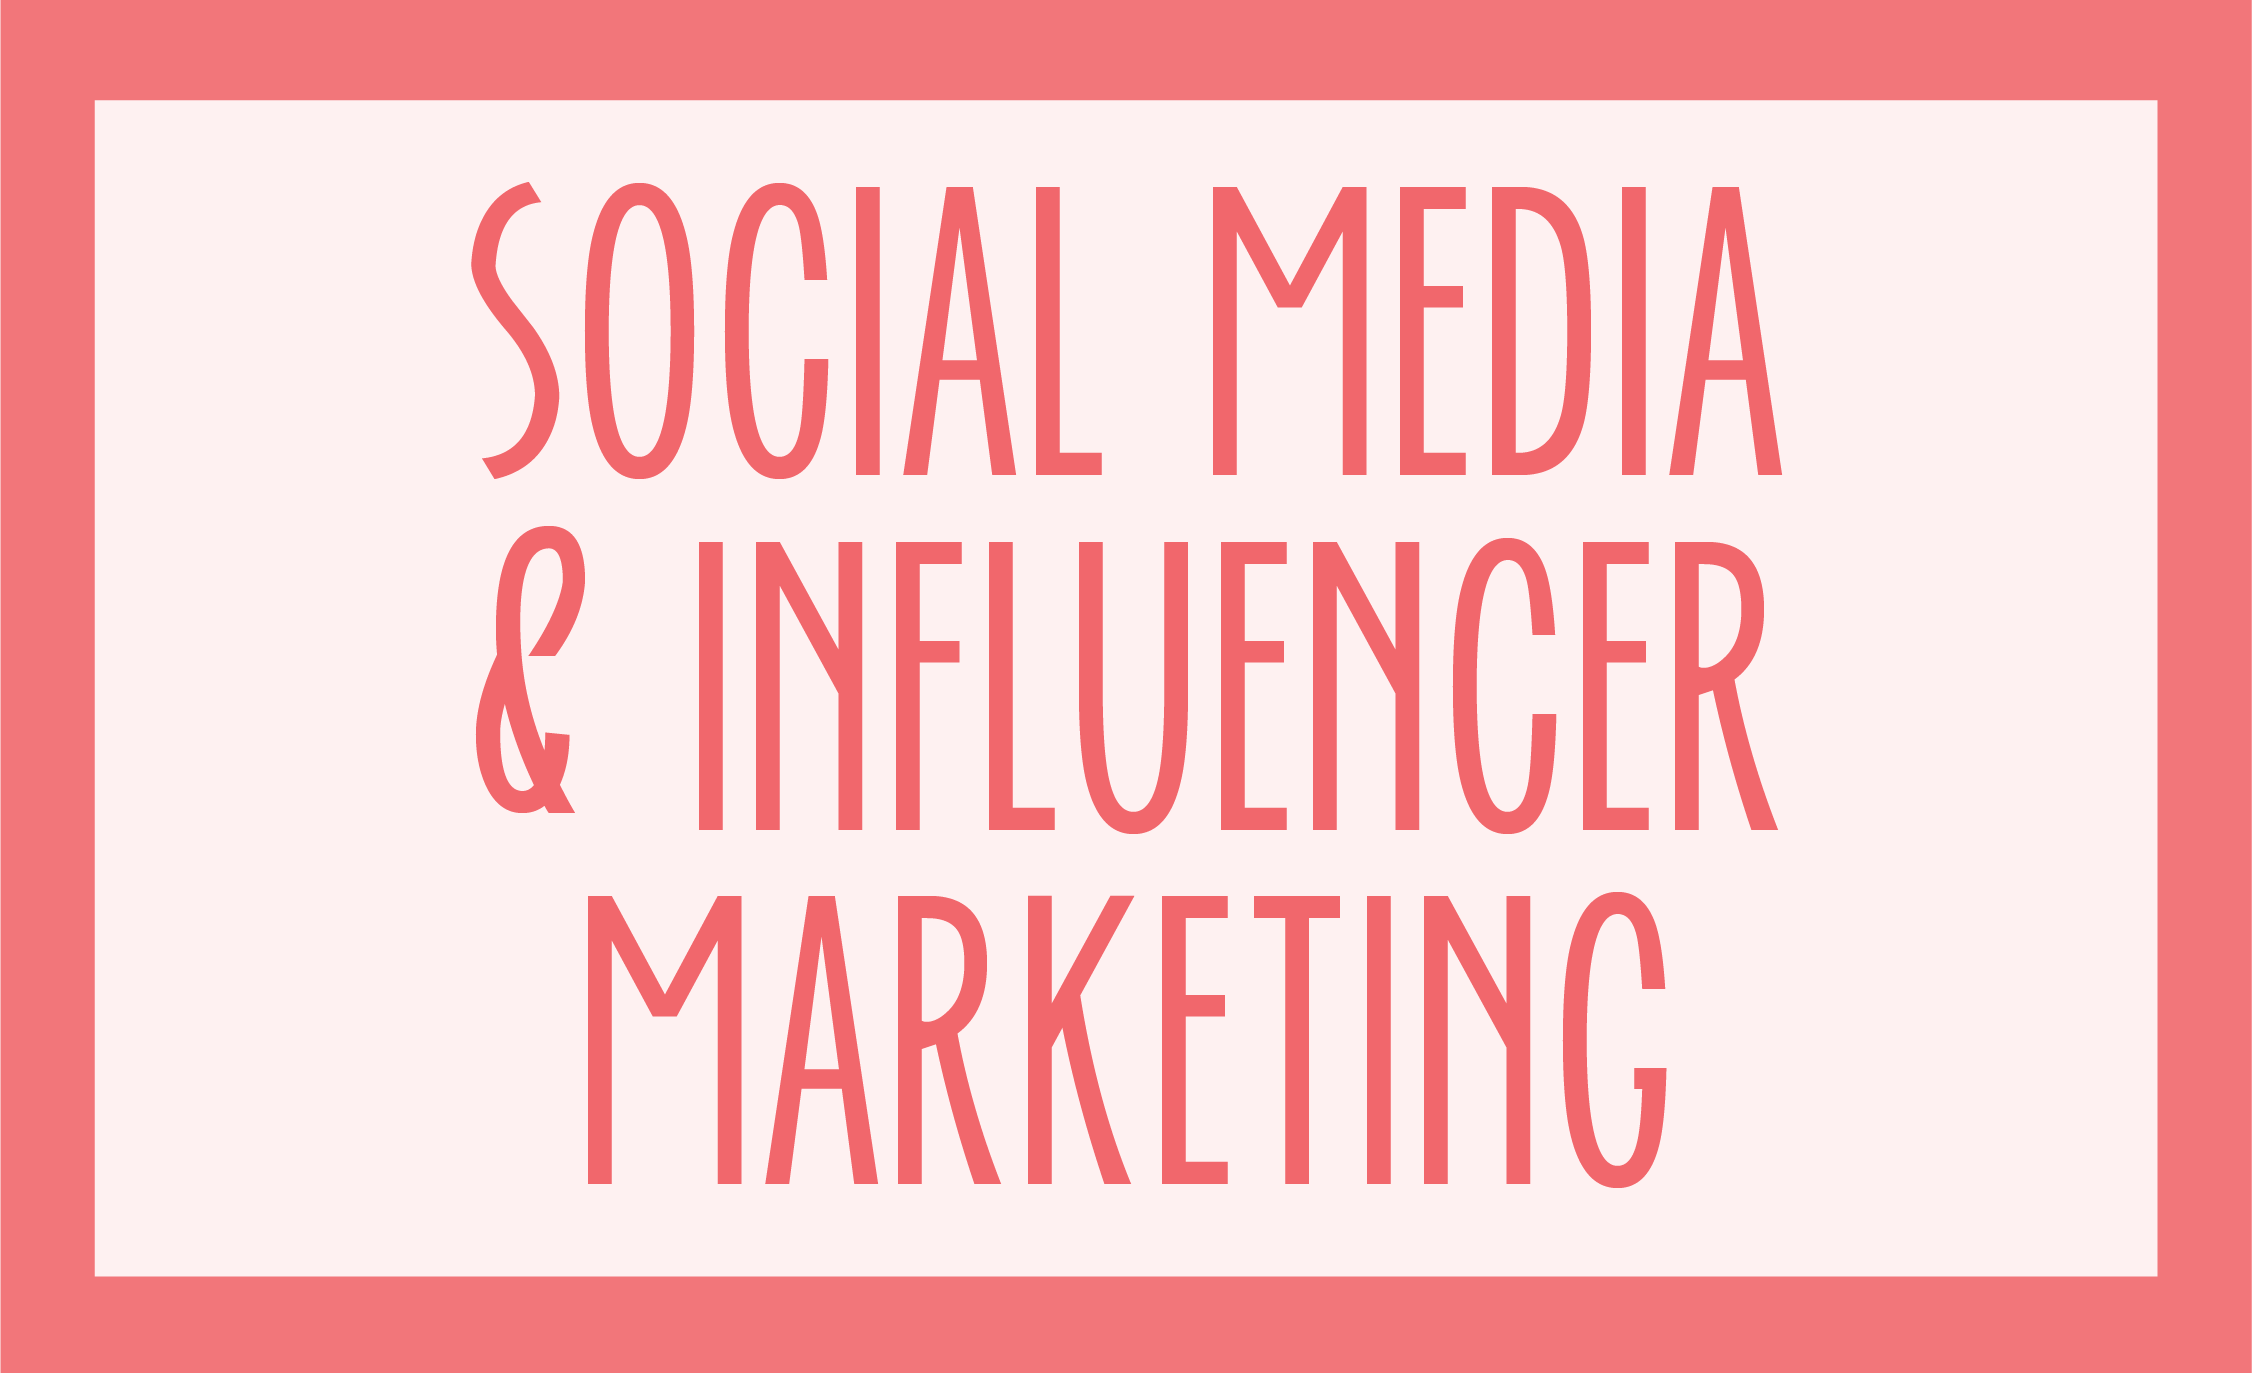 Bold & Pop : Social media and influencer marketing help for your business resource